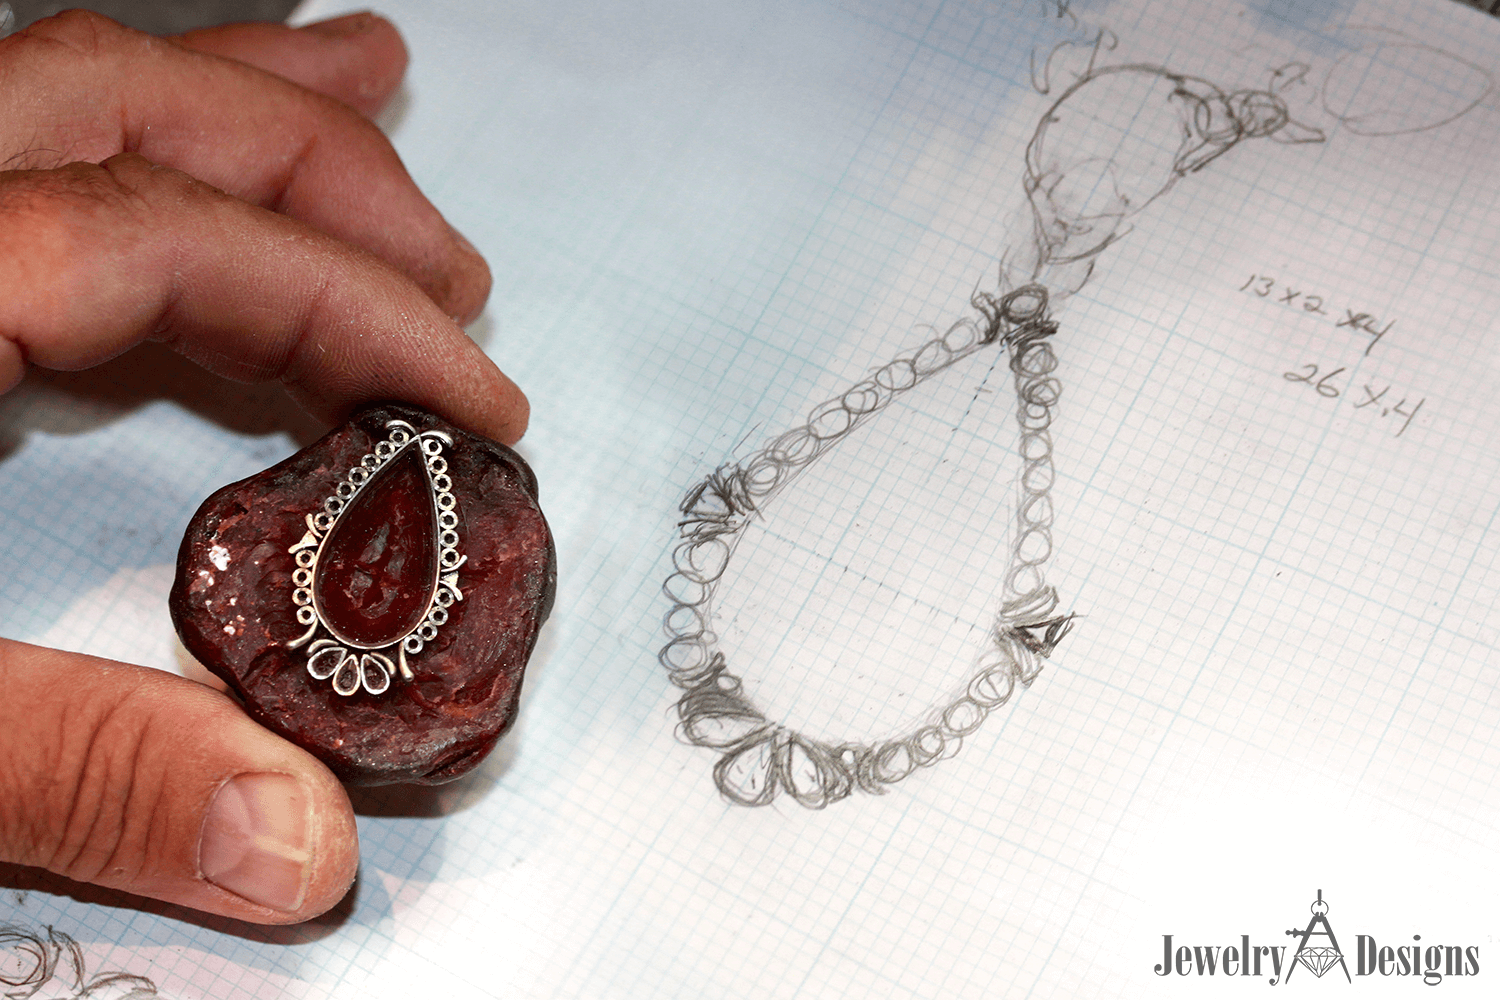 Designing Jewelry - Jewelry Making Process